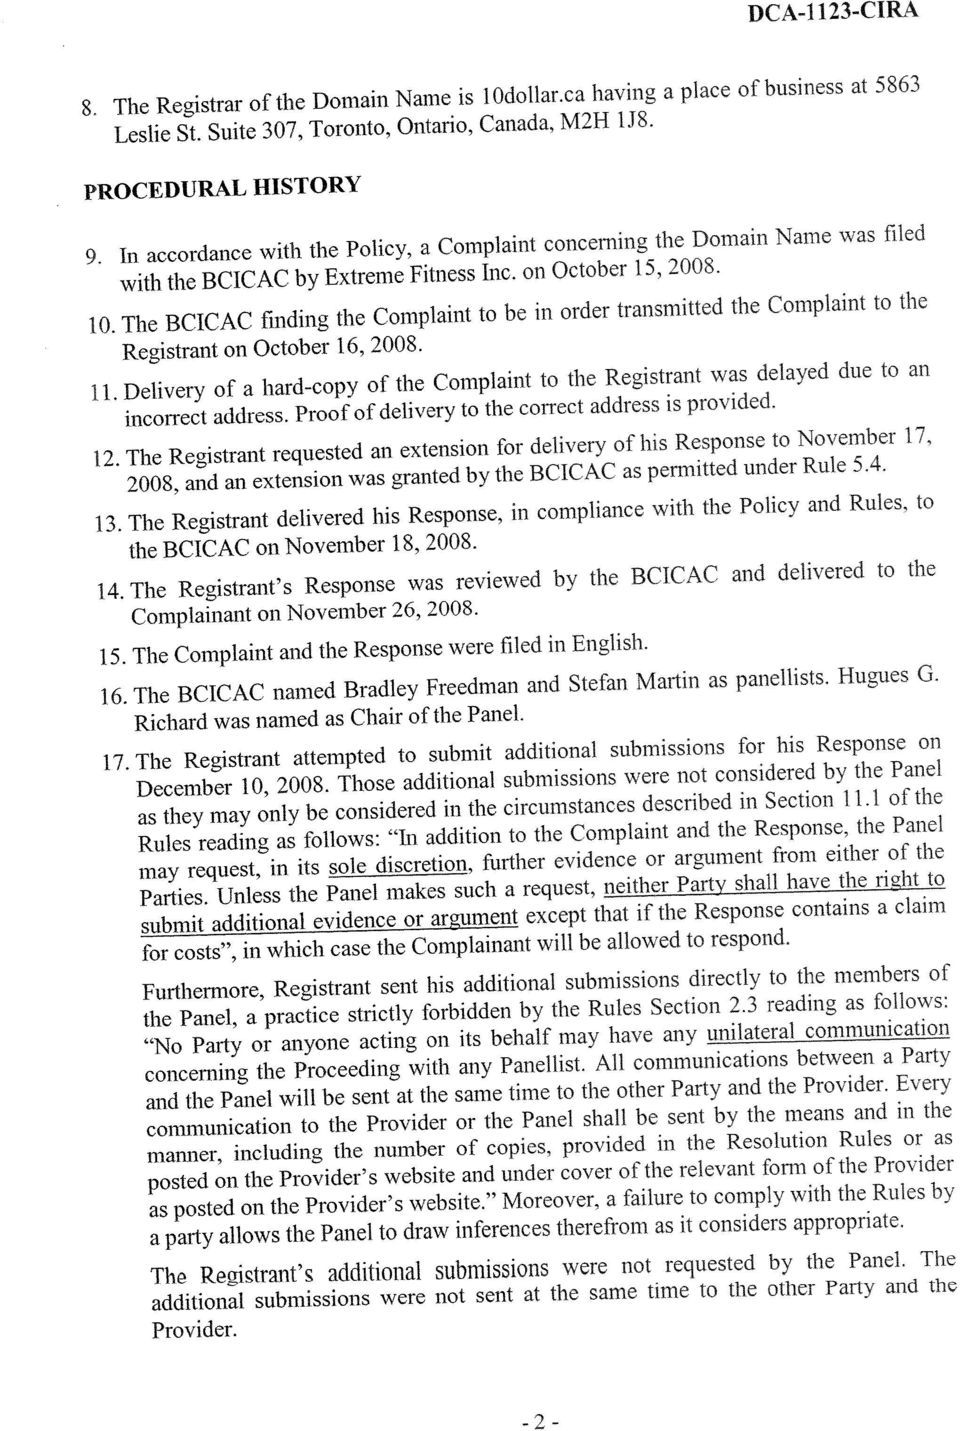 The BCICAC finding the Complaint to be in order transmitted the Complaint to the Registrant on October 16, 2008. 11.